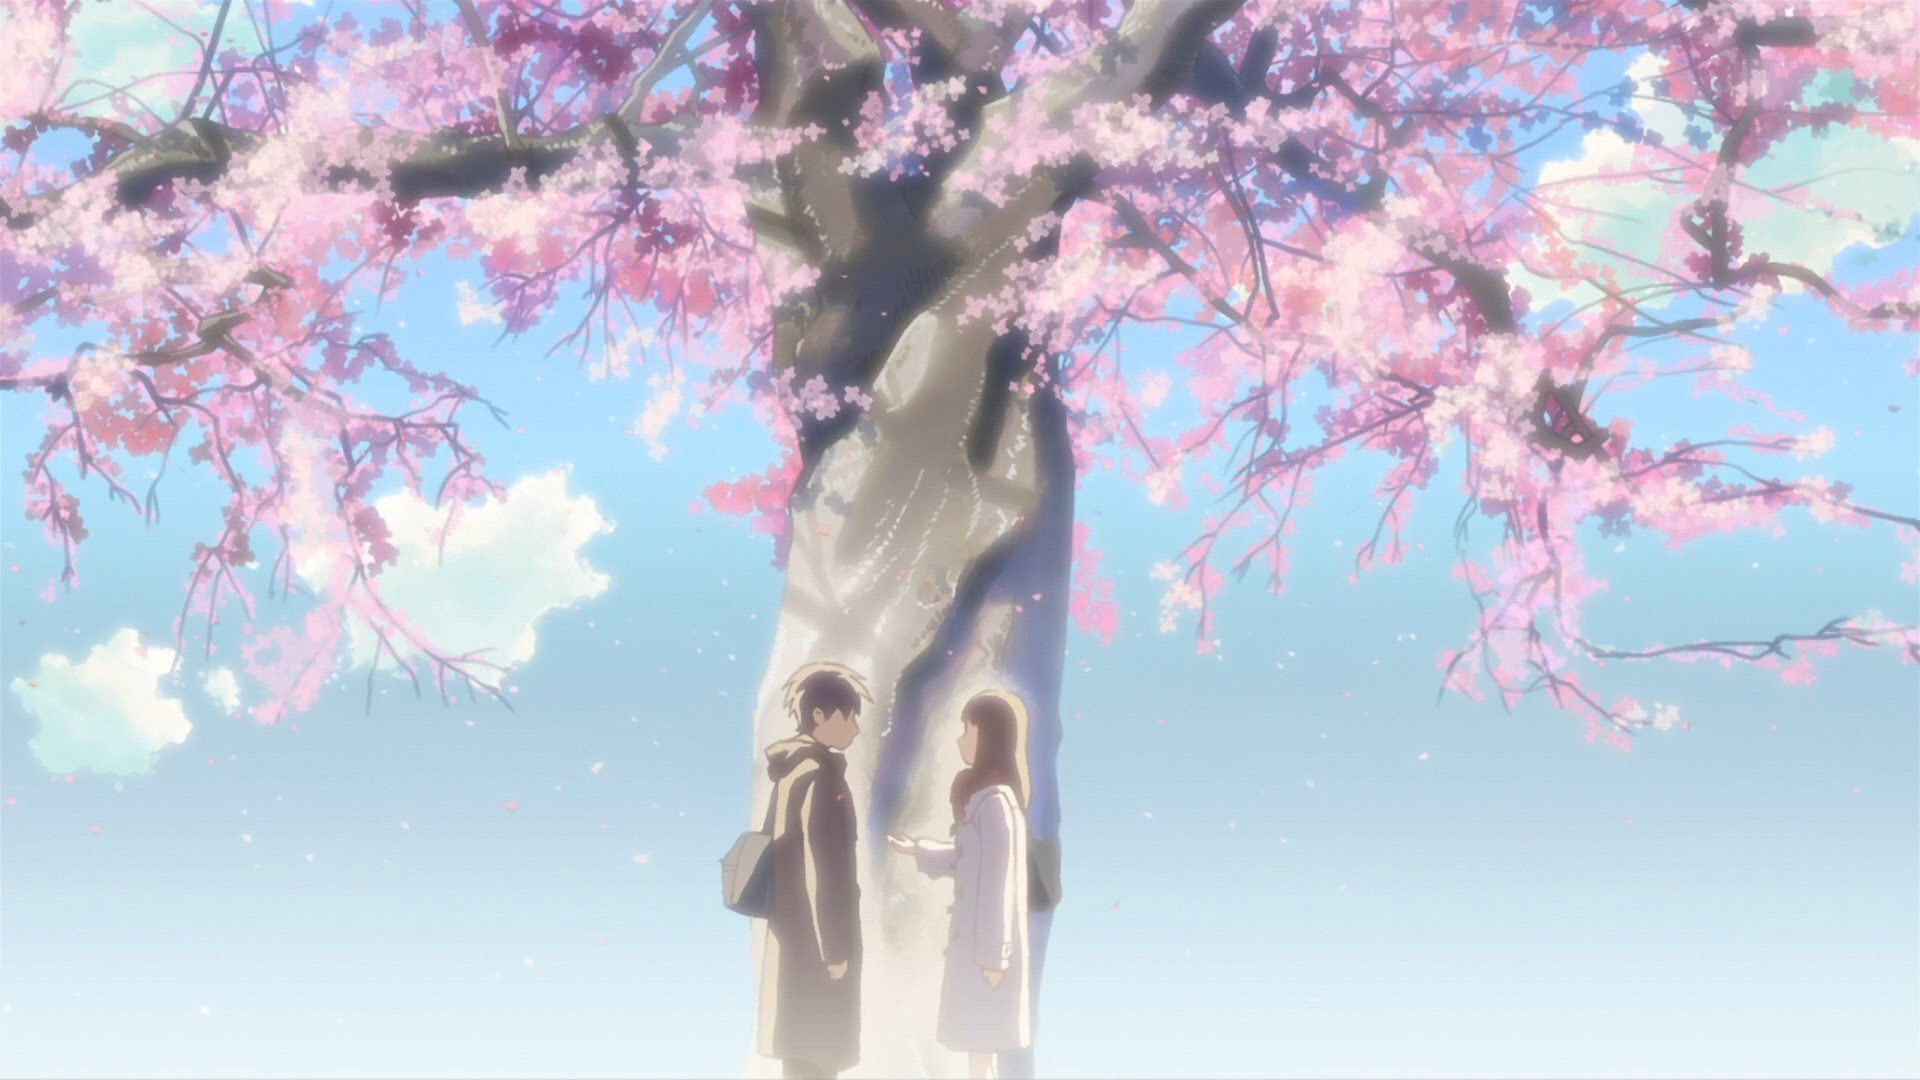 High Resolution Wallpaper Of Anime 5 Centimeters Per Second